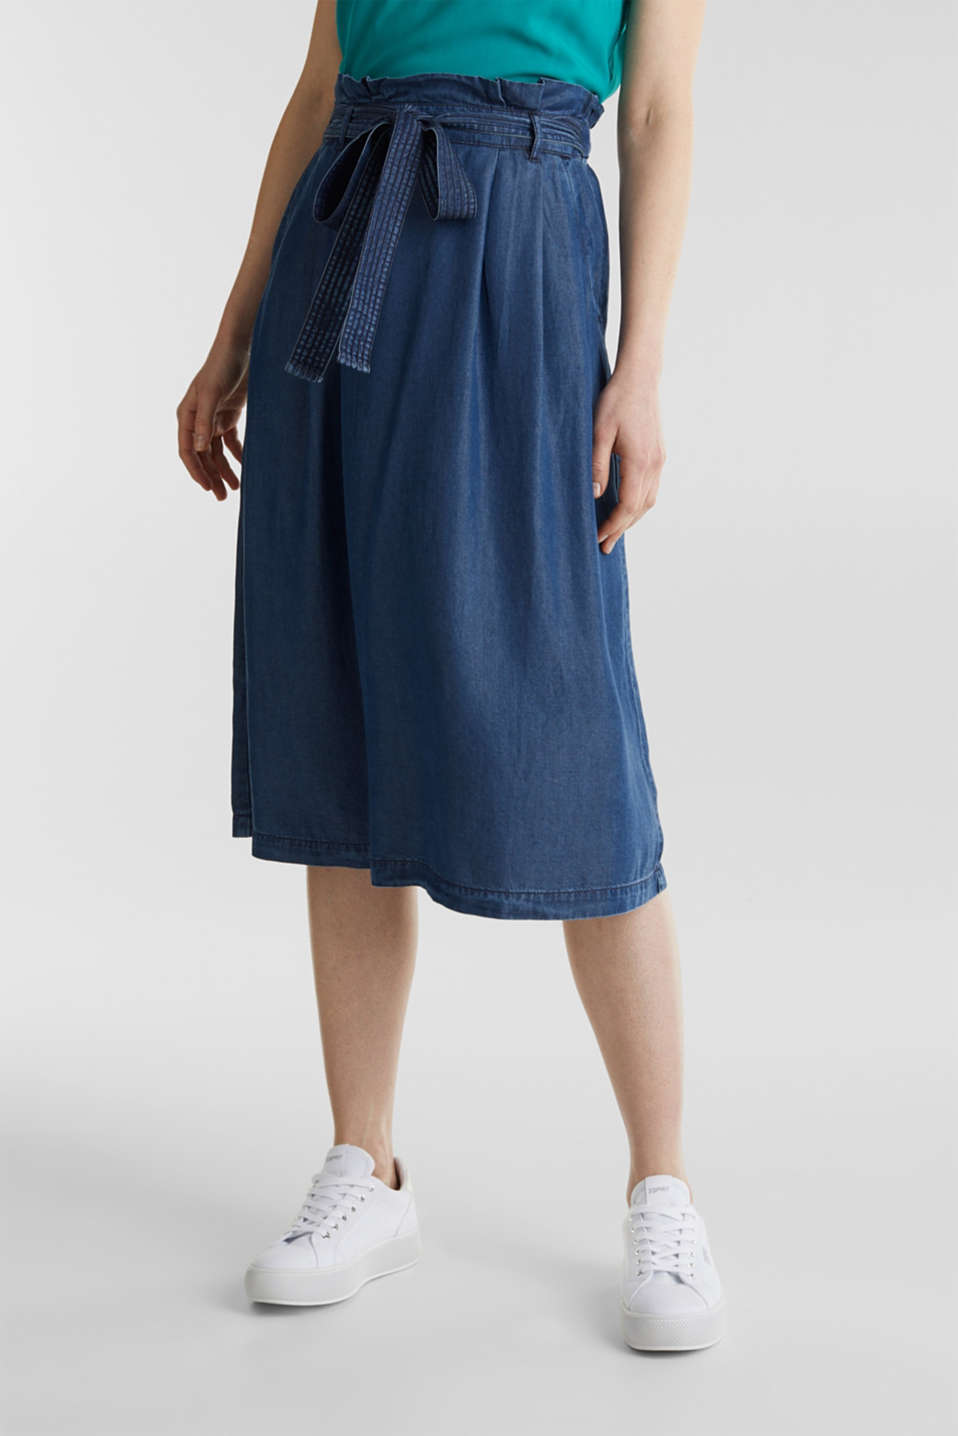 Skirt with a paperbag waistband made of TENCEL™, BLUE DARK WASH, detail image number 5